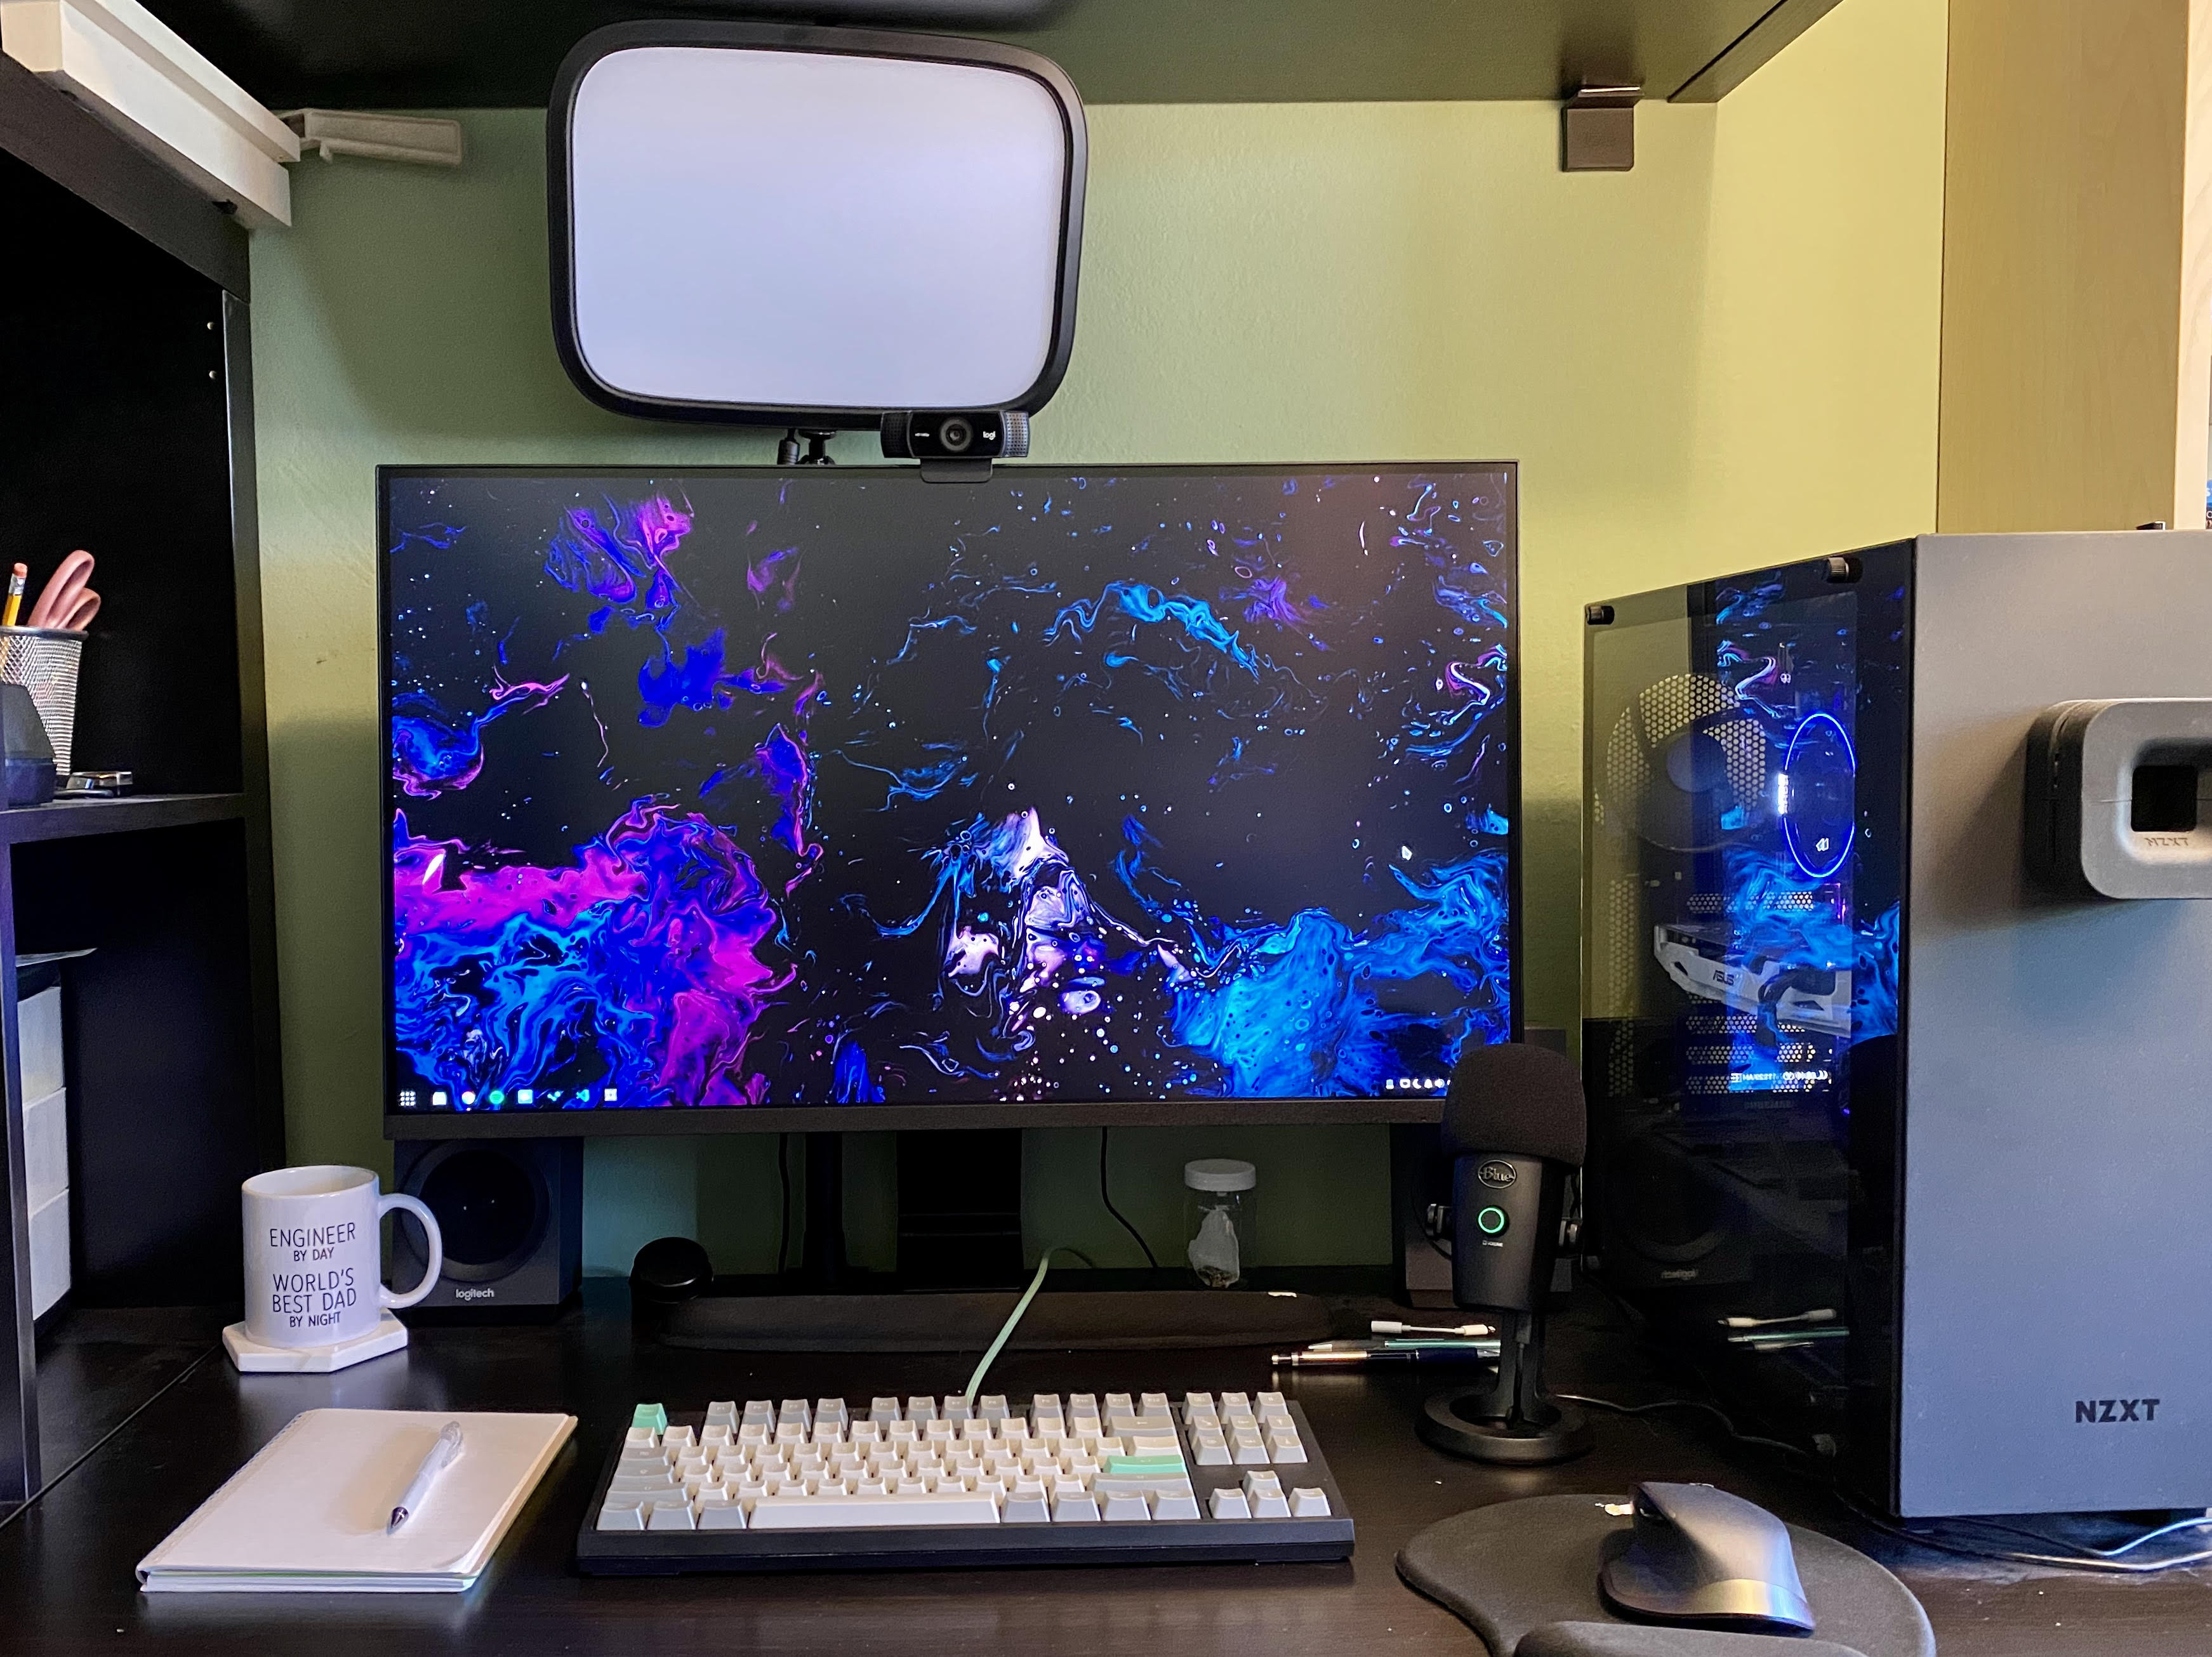 Show Your Pc Laptop Gaming Setup Solus Forum